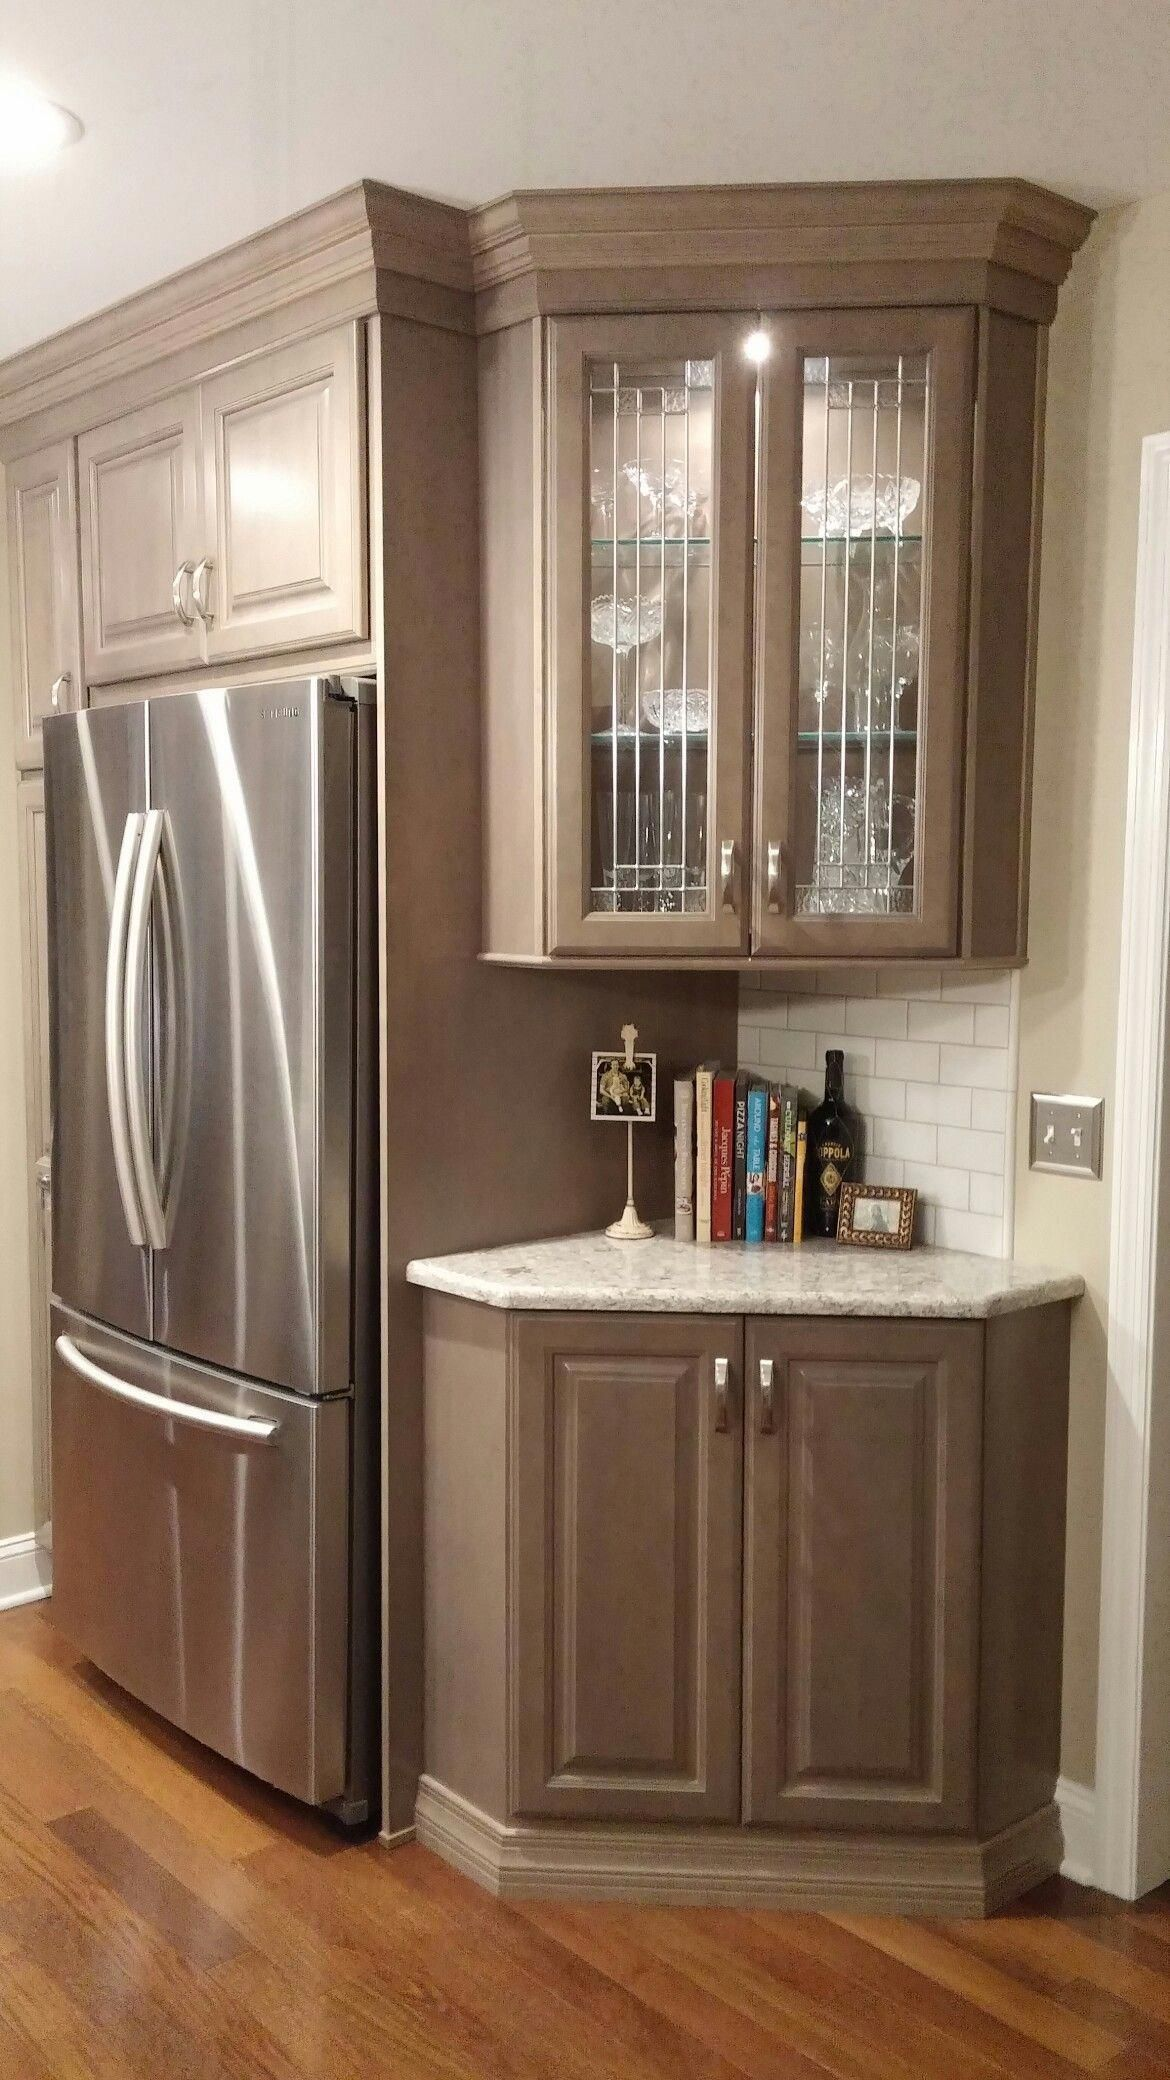 Organization Here Are Some Closet Organization Ideas That Create A Functional Space Drawers Are Some O In 2020 Diy Kitchen Remodel Kitchen Cabinets Home Kitchens